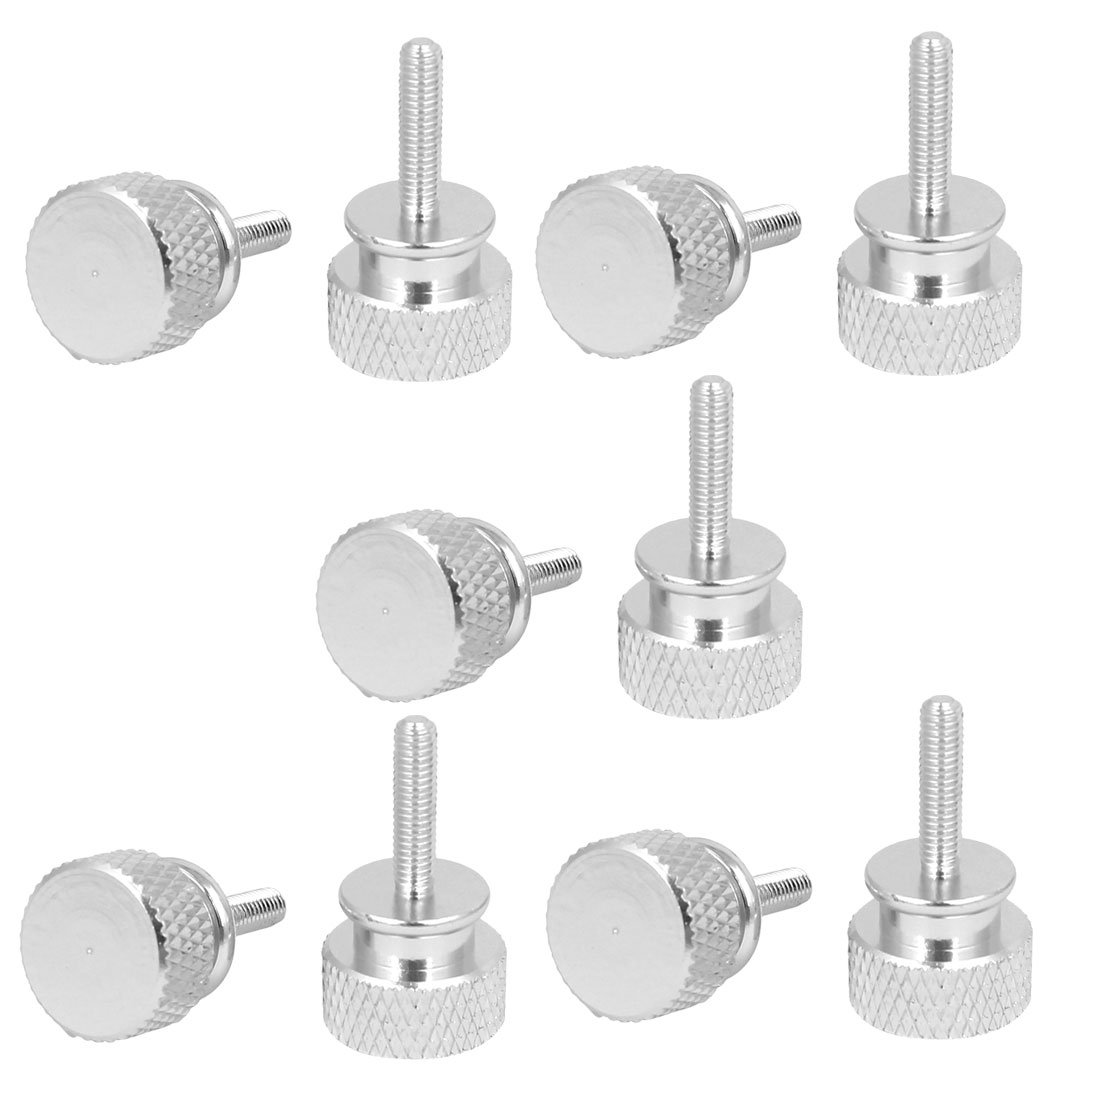 uxcell Computer PC Case M3x12mm Aluminum Alloy Knurled Thumb Screws Silver Tone 10pcs